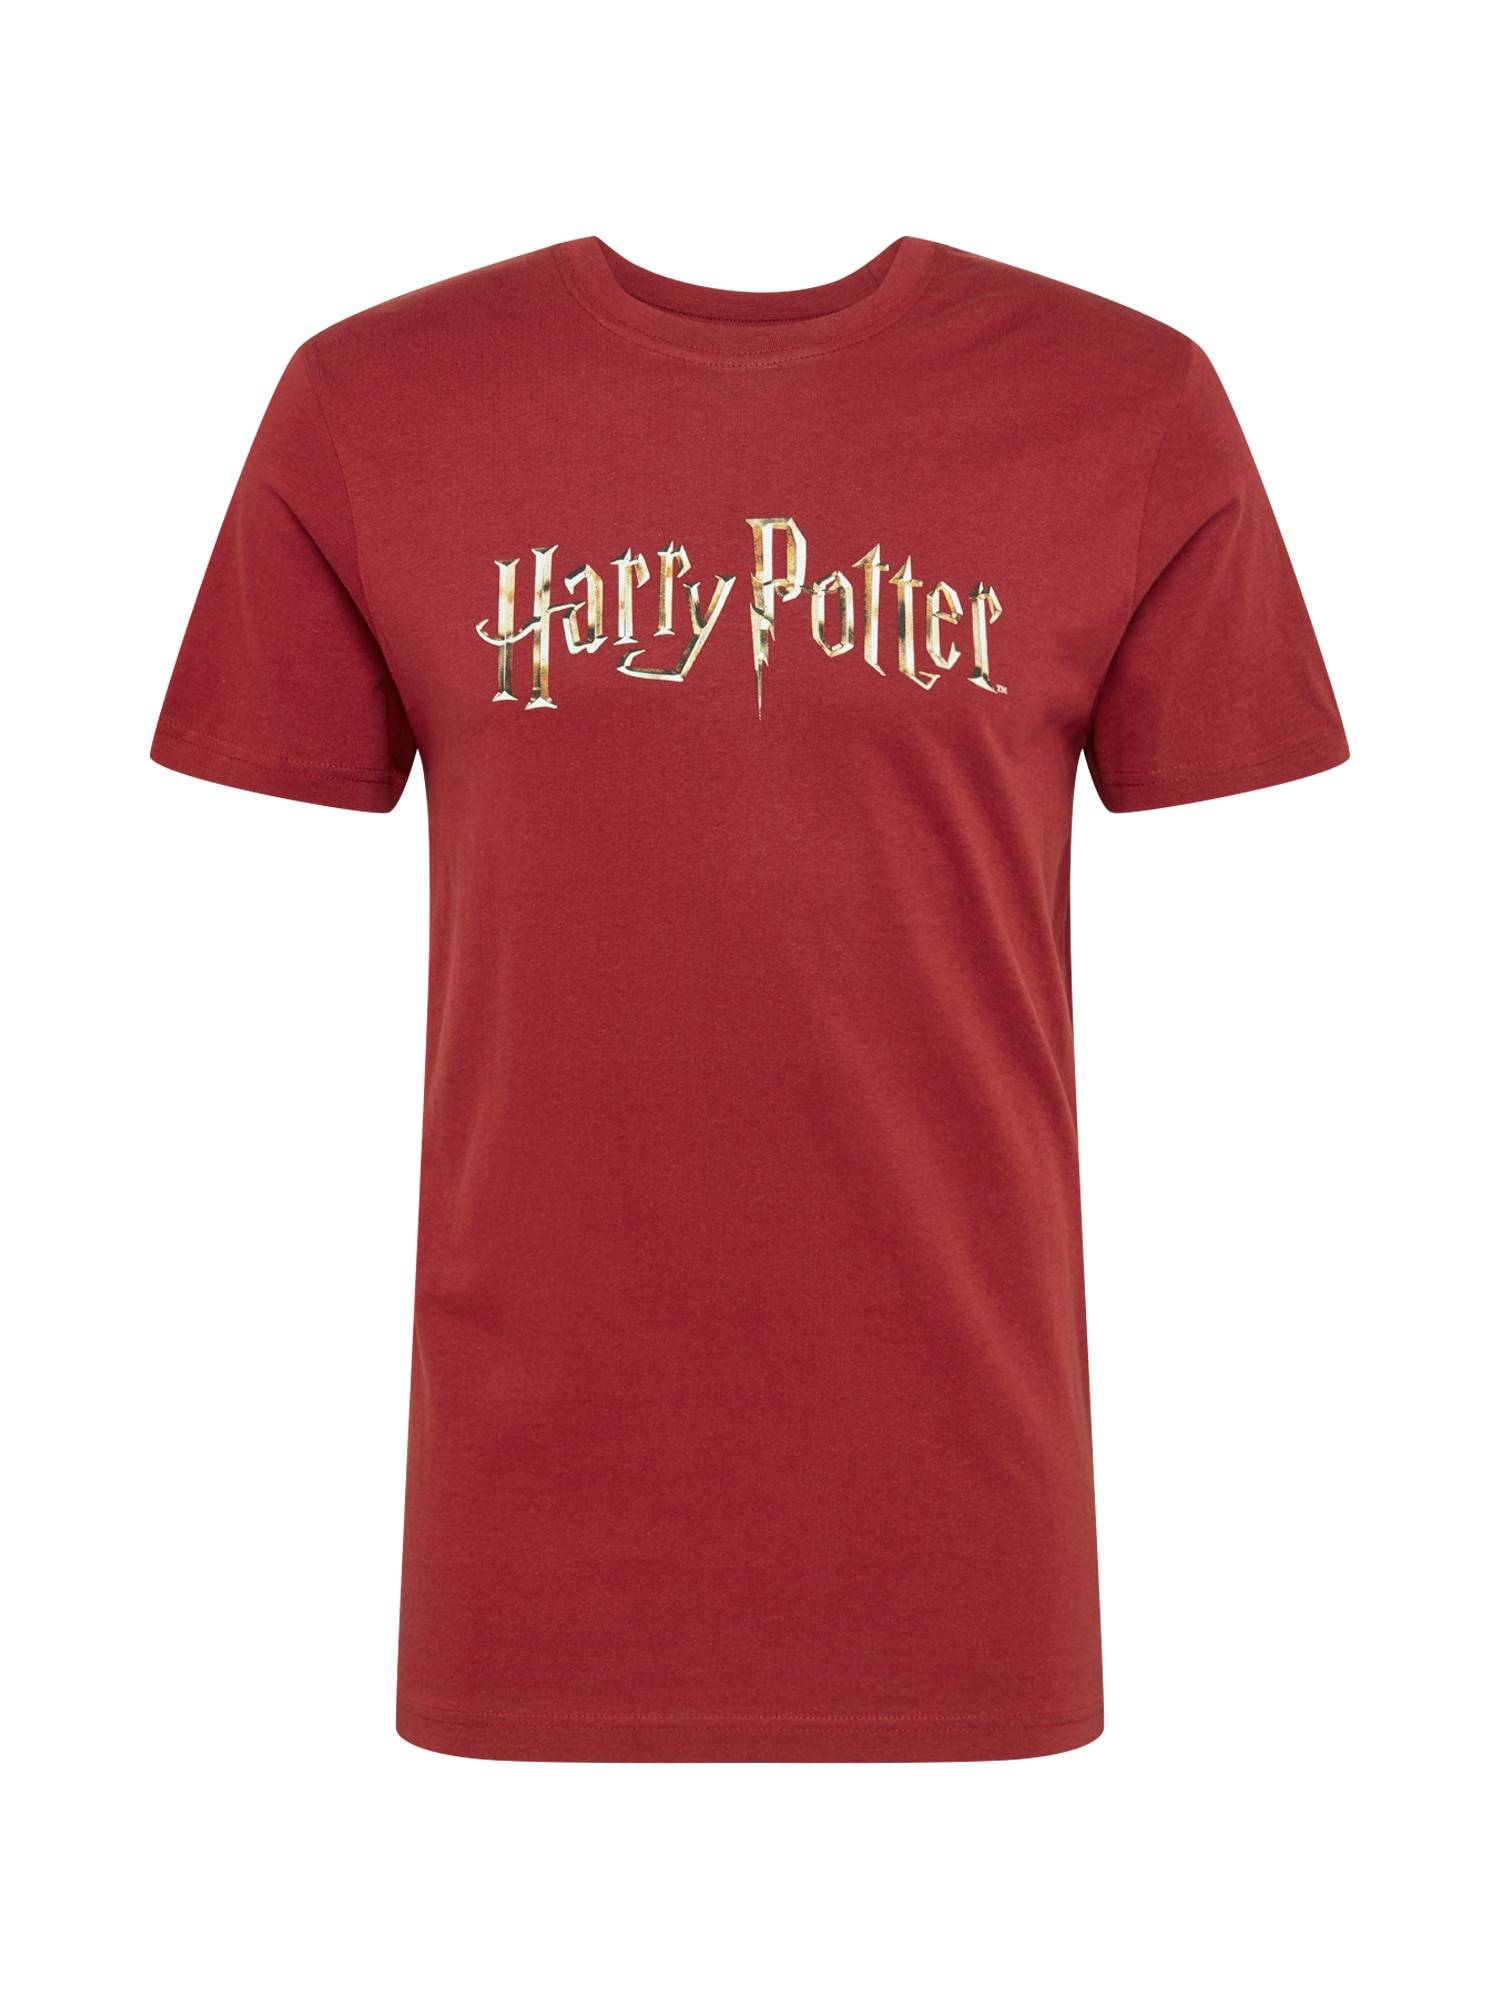 Tee T-Shirt 'Harry Potter'  - Rouge - Taille: XXL - male